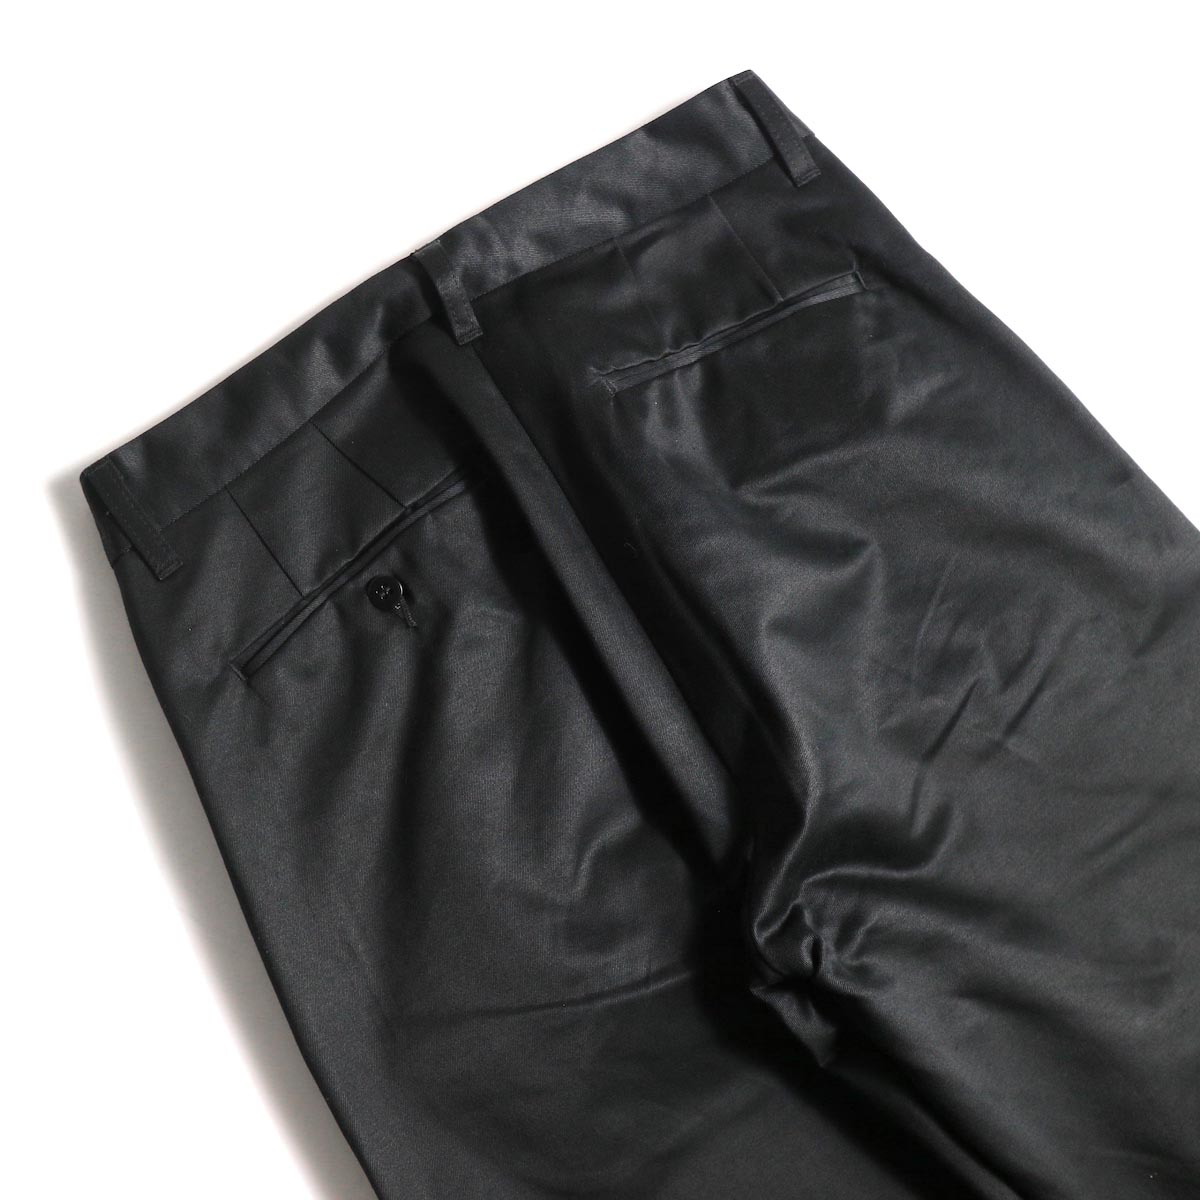 FUTURE PRIMITIVE / FP FZ CHINO PANTS (Black)ヒップポケット